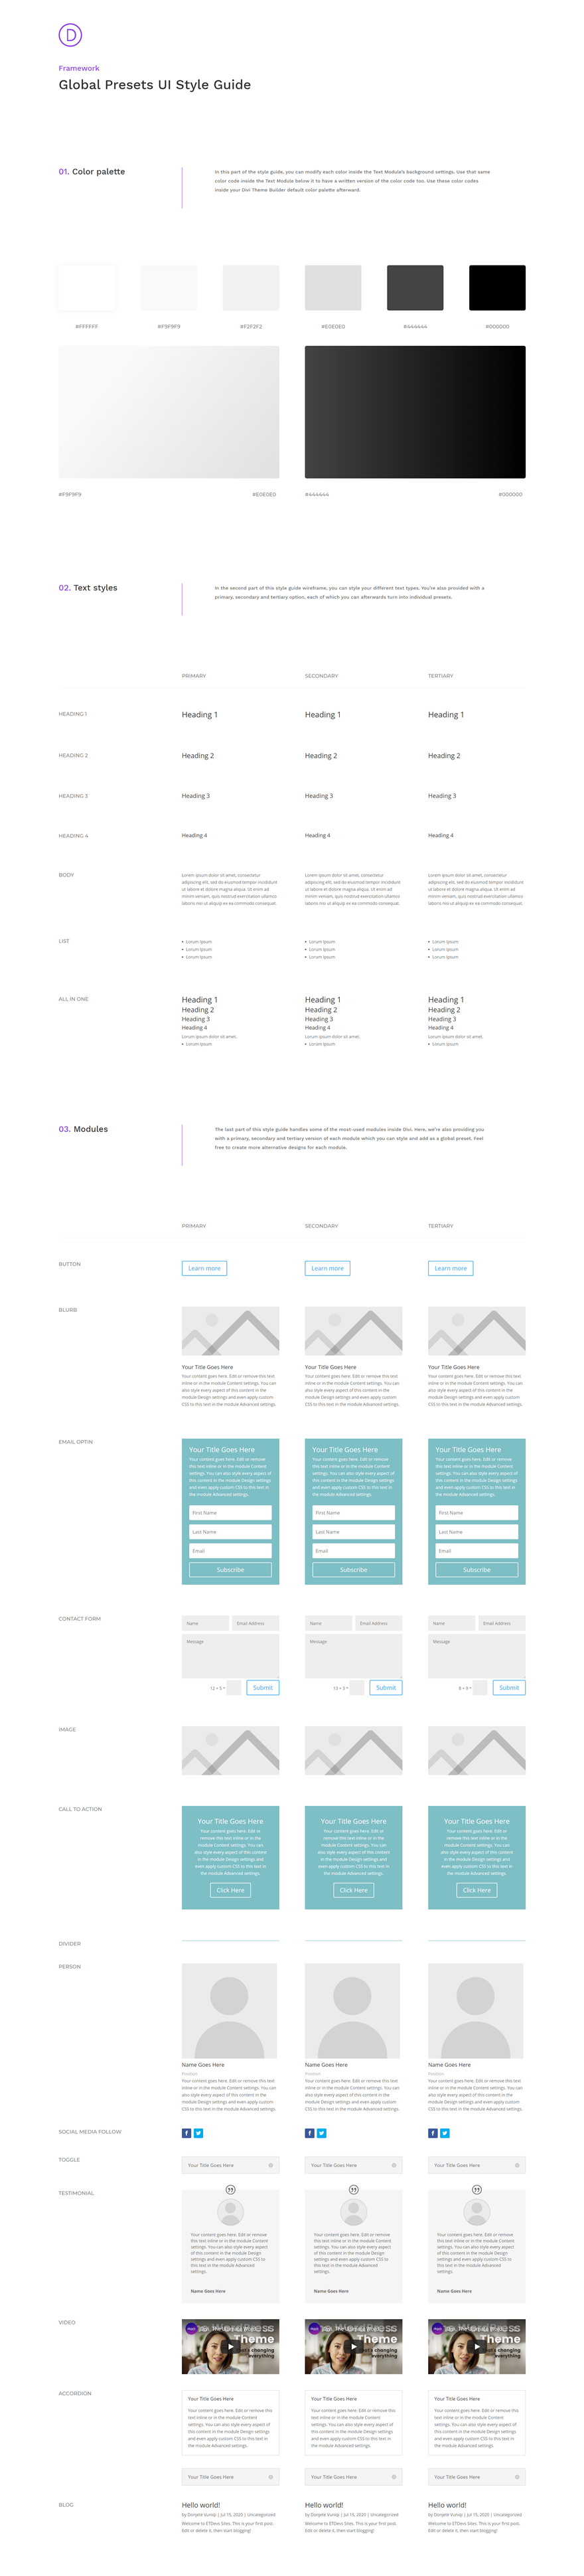 setting-up-a-global-presets-style-guide-for-your-next-divi-website-free-framework-download Setting up a Global Presets Style Guide for Your Next Divi Website (FREE Framework Download!)